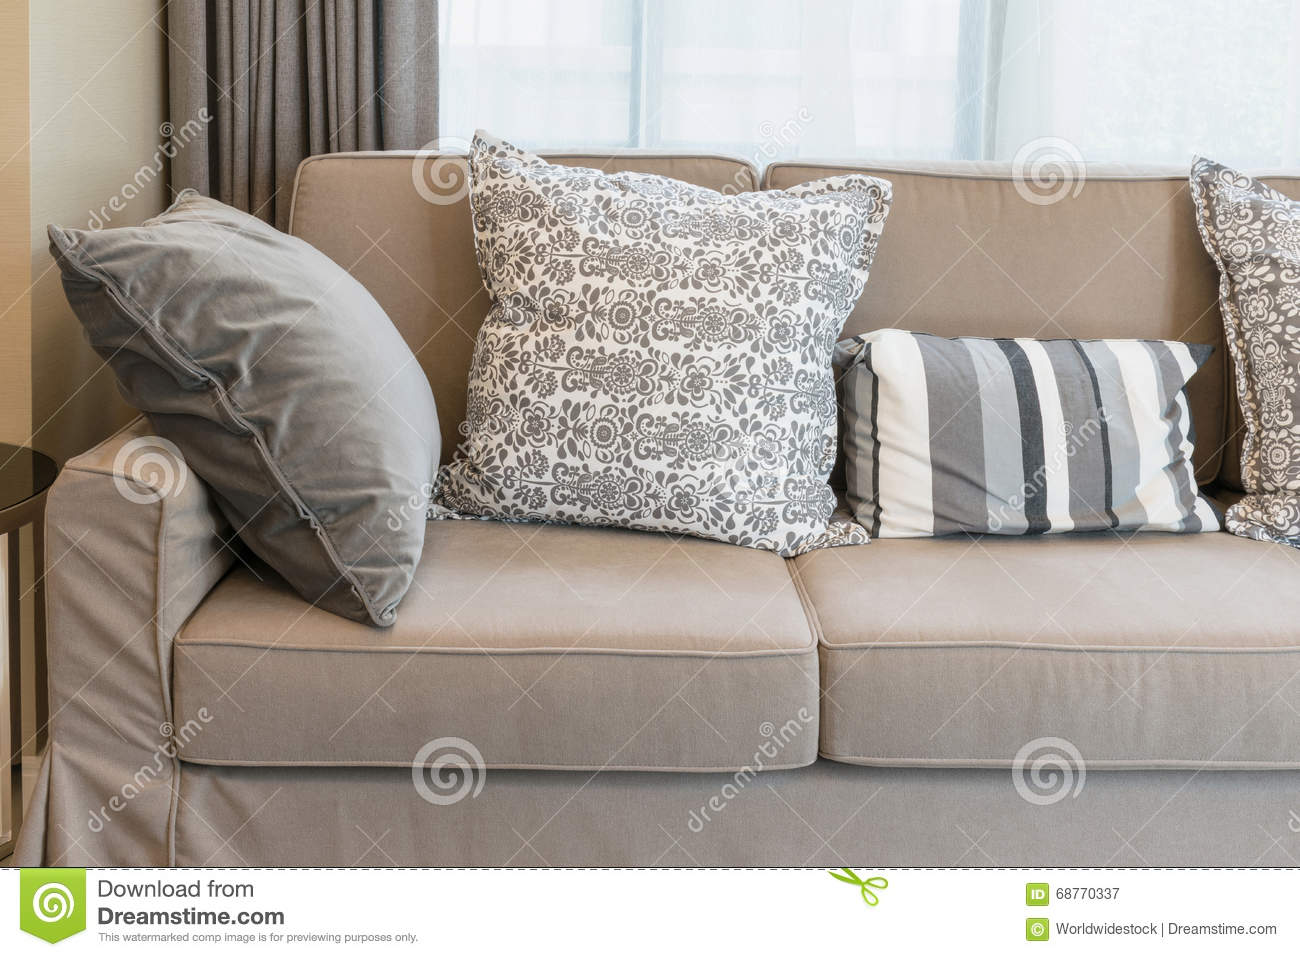 sturdy brown tweed sofa with grey patterned pillows royalty free stock image. Black Bedroom Furniture Sets. Home Design Ideas